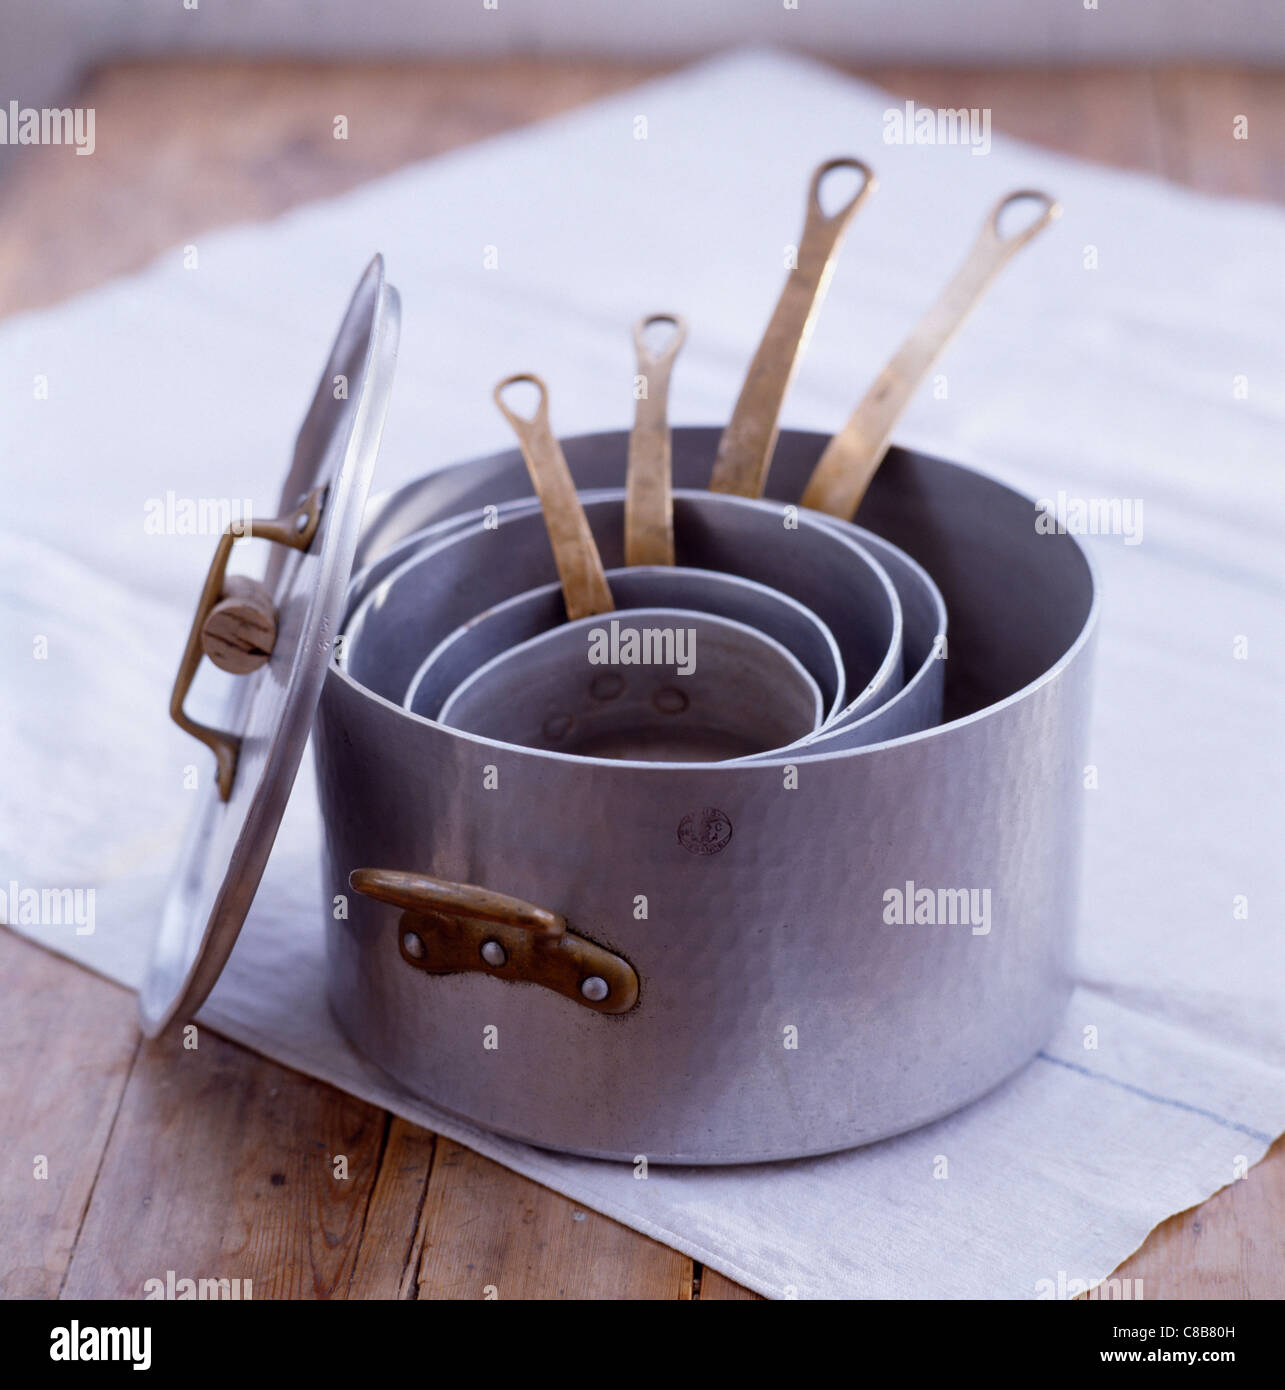 Cooking pans - Stock Image